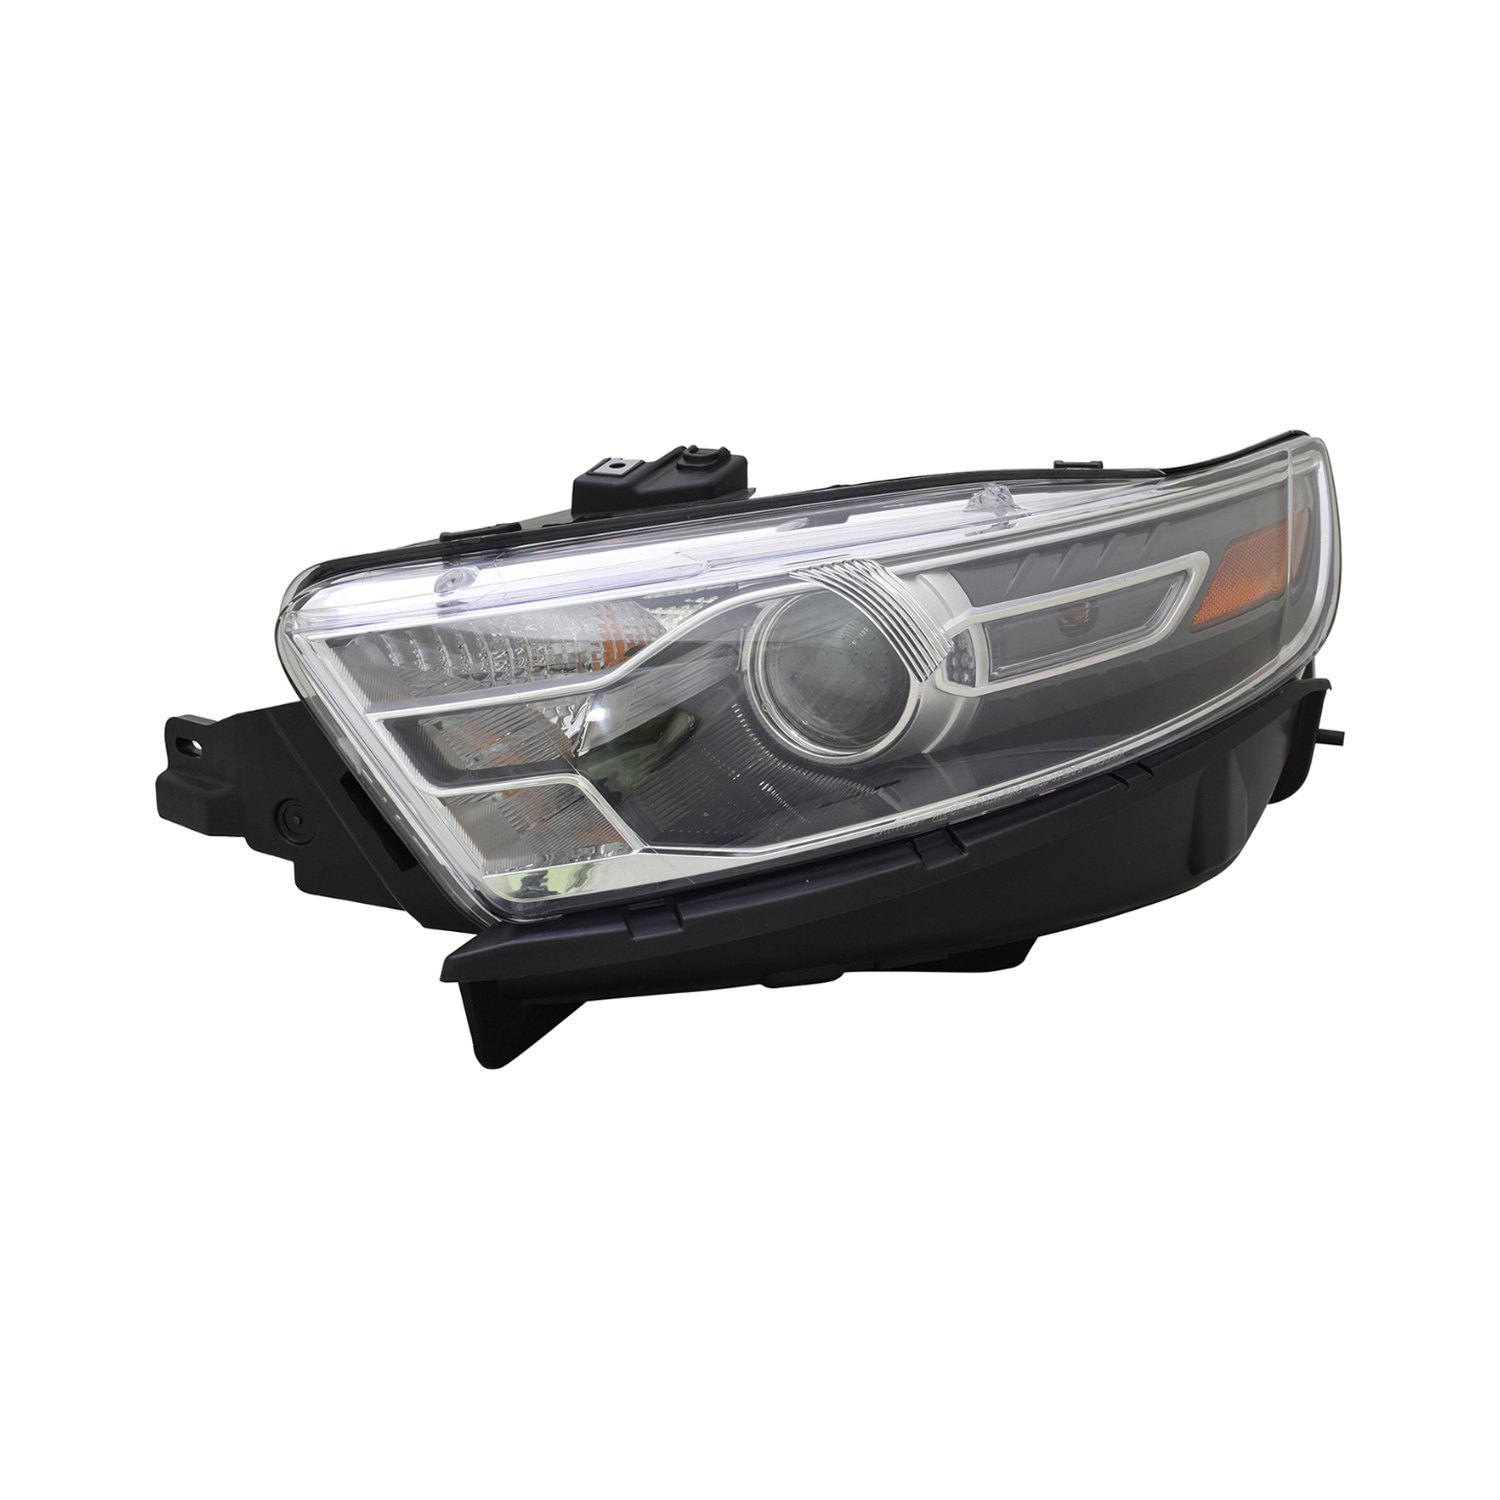 2013 Ford Taurus Headlight Replacement : Replace ford taurus with factory halogen headlights